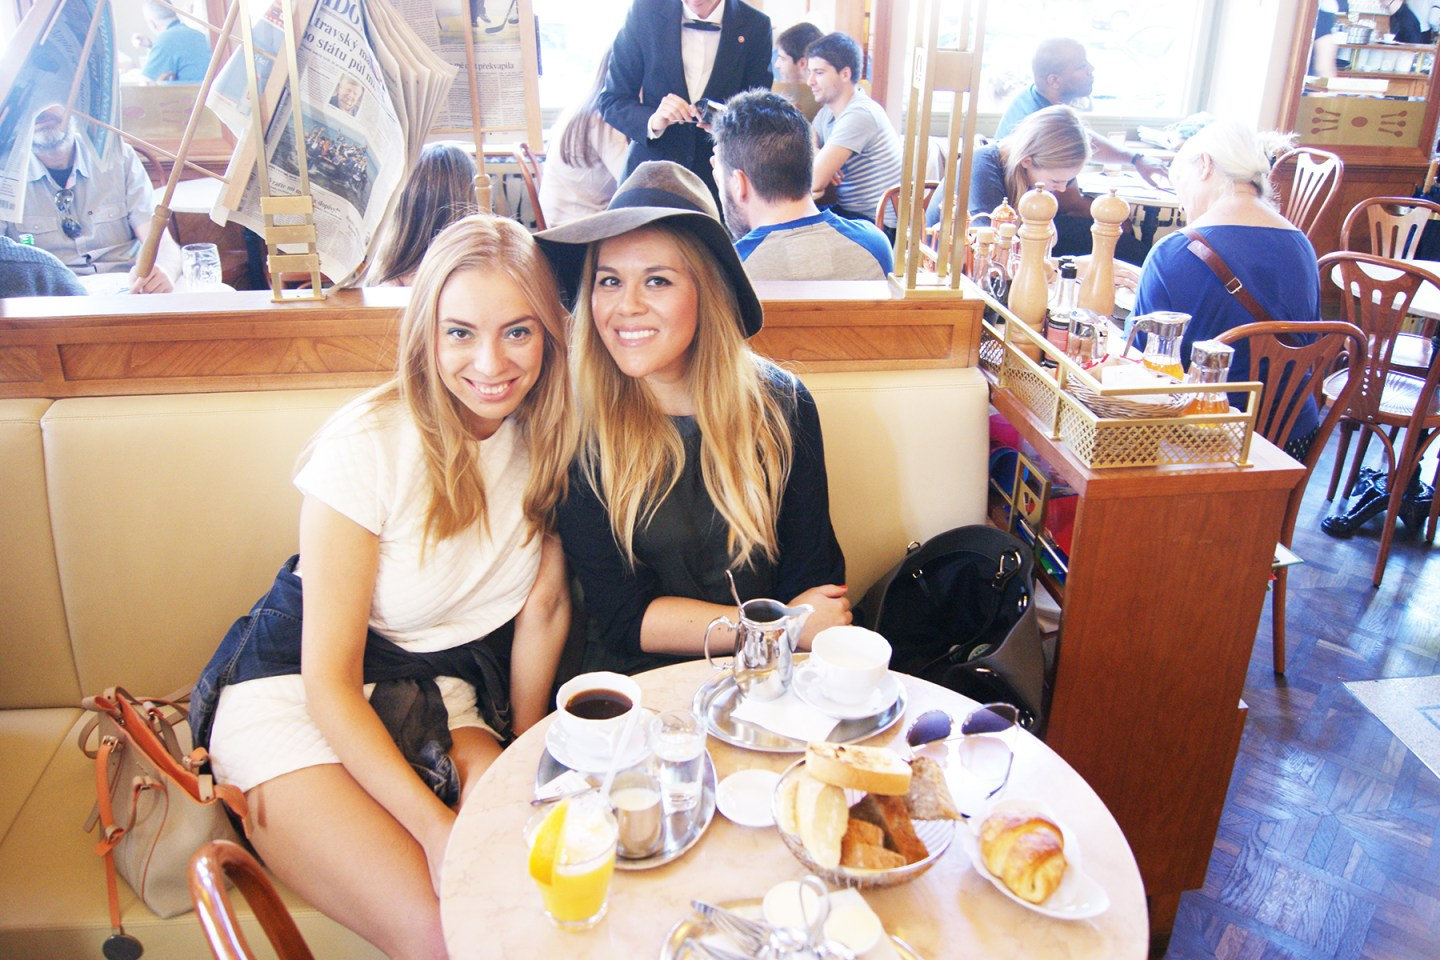 Brunch at the Savoy with my friend